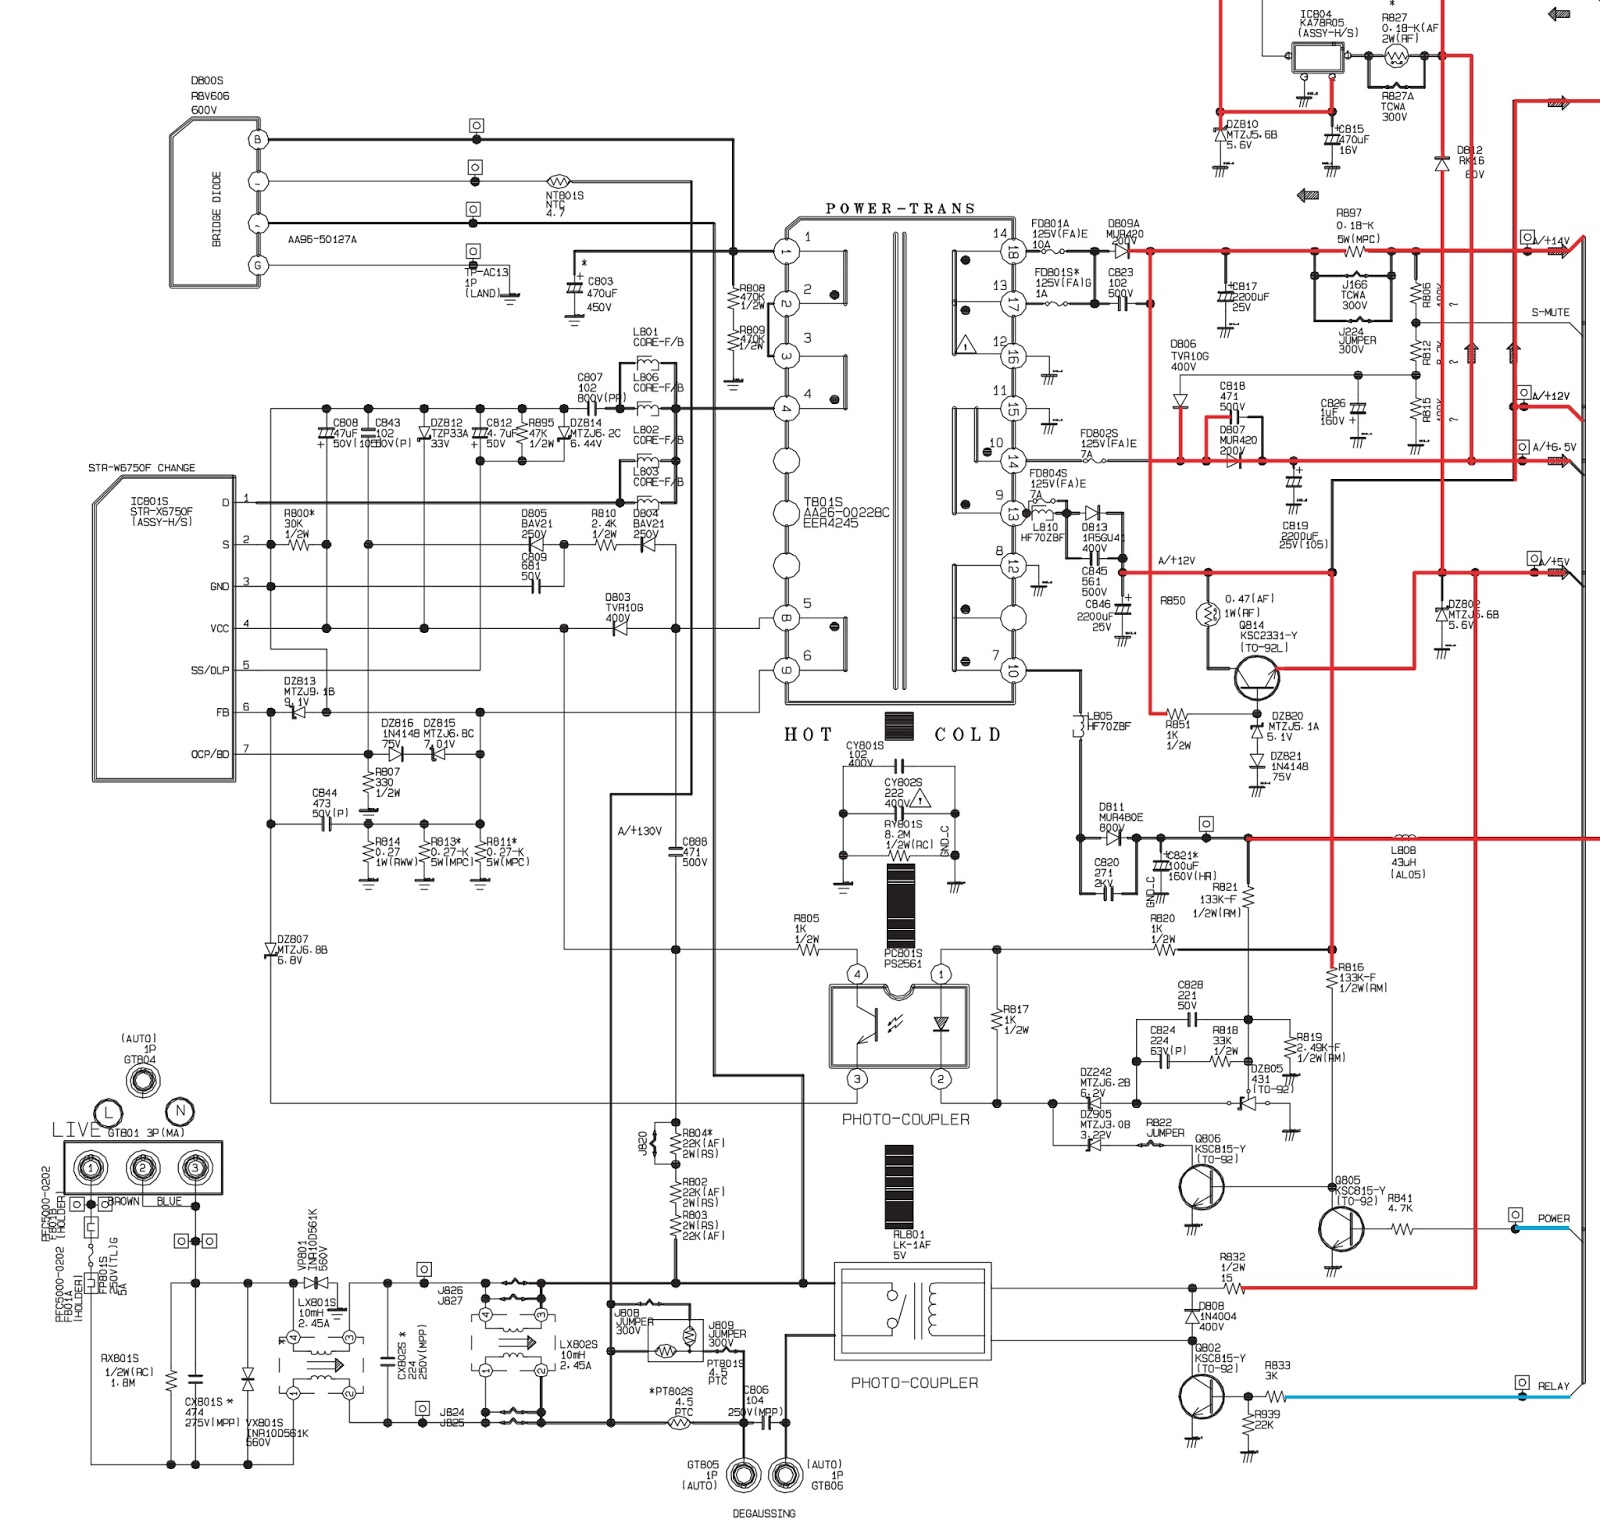 schematic circuit diagram str